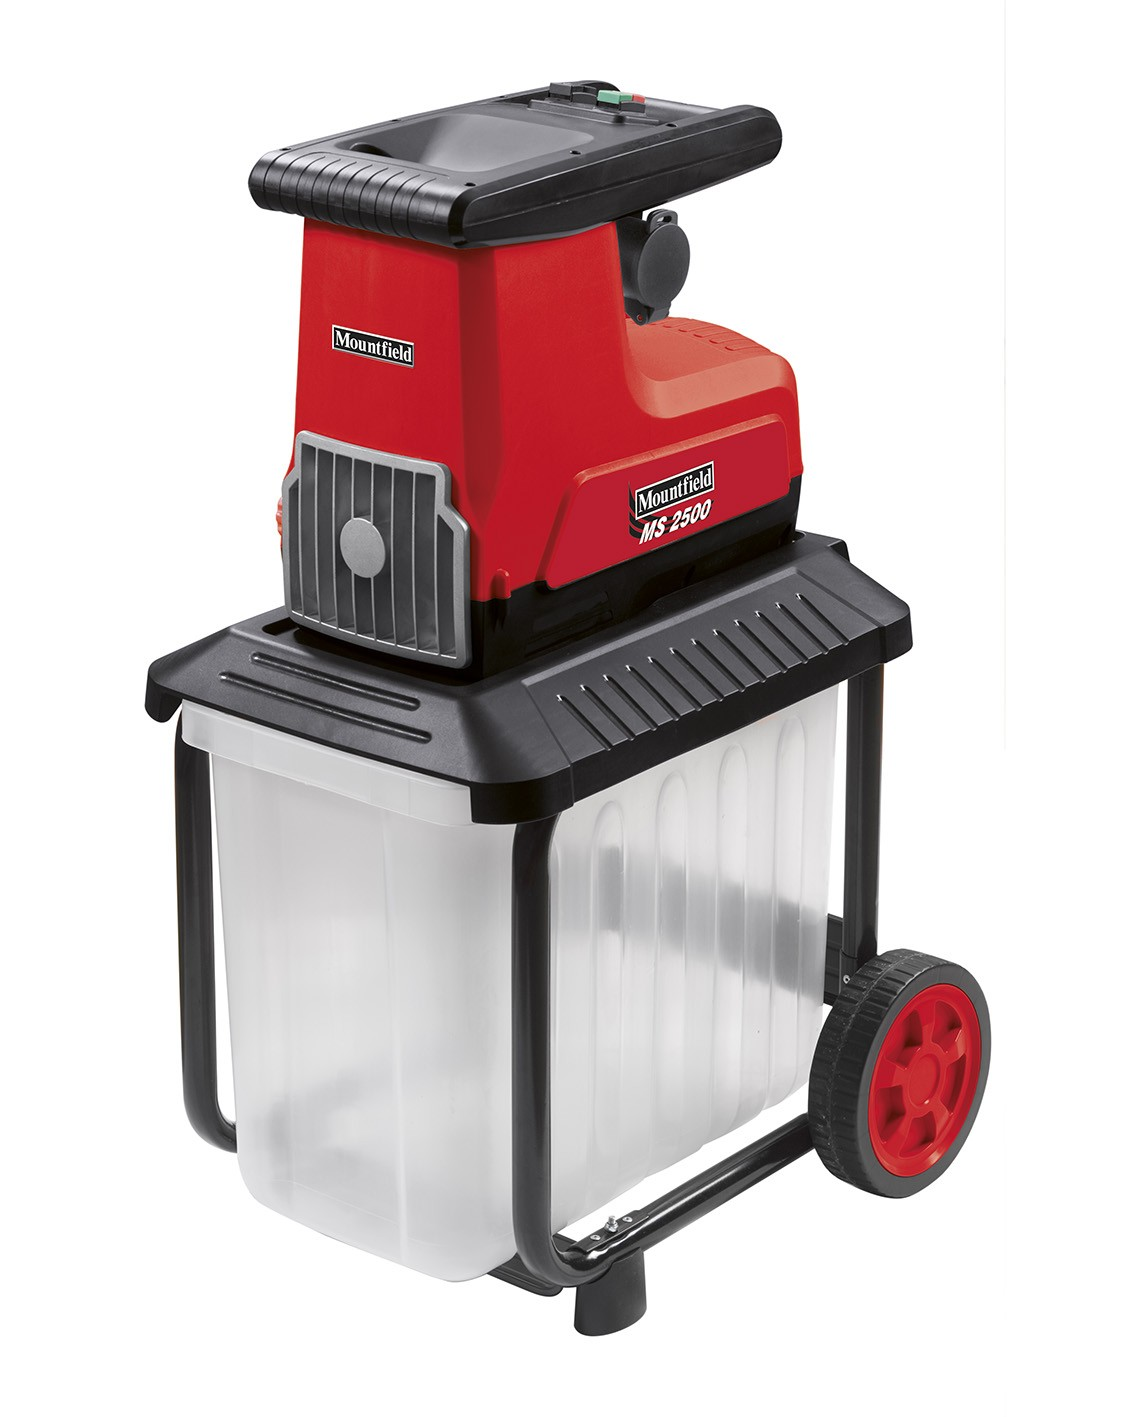 Mountfield MS2500 Electric Garden-Shredder